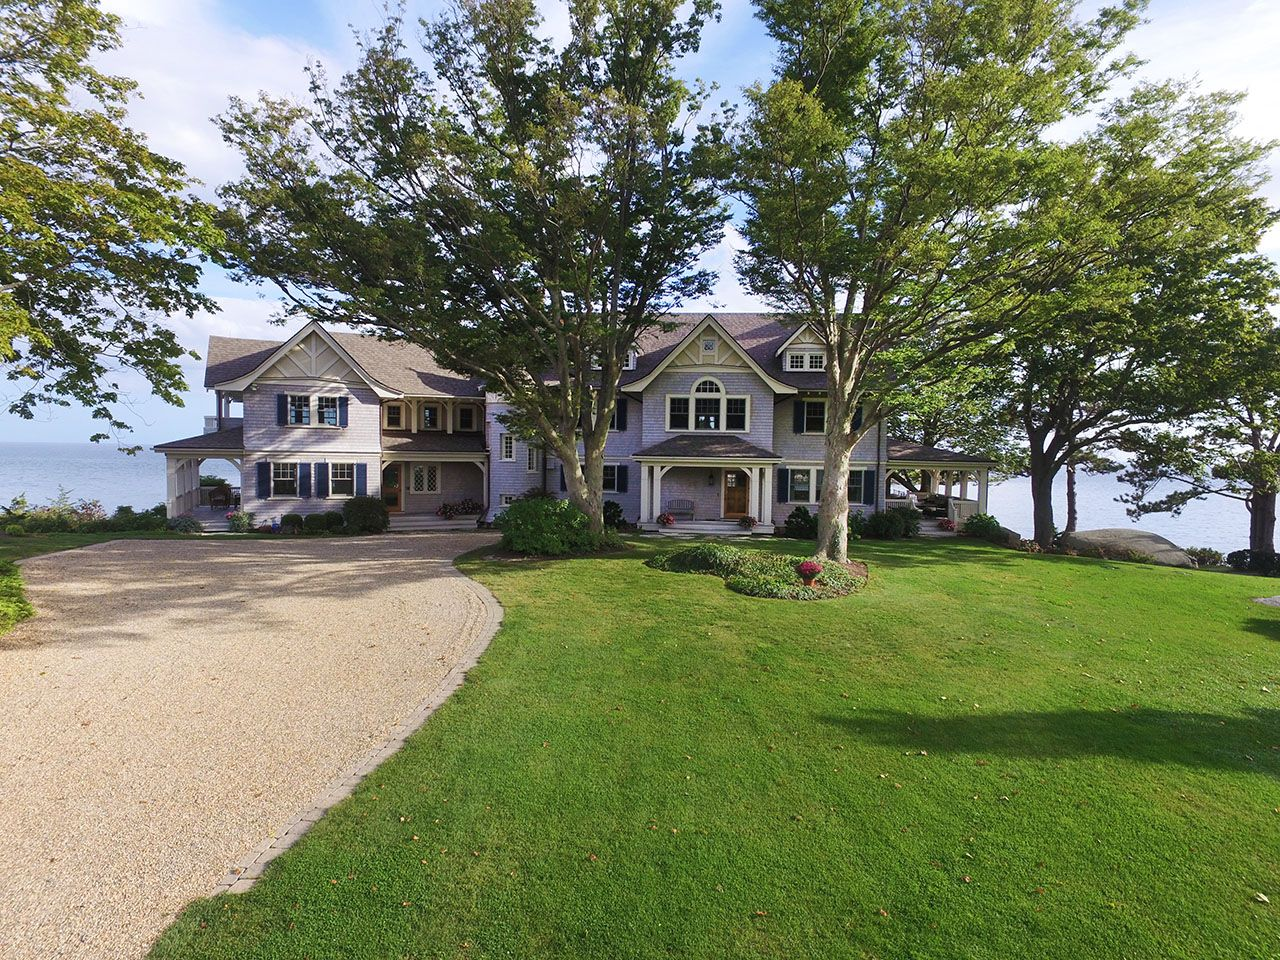 Additional photo for property listing at Oceanfront Compound with 2 Residences 33-35 Coolidge Point Manchester By The Sea, Massachusetts,01944 United States